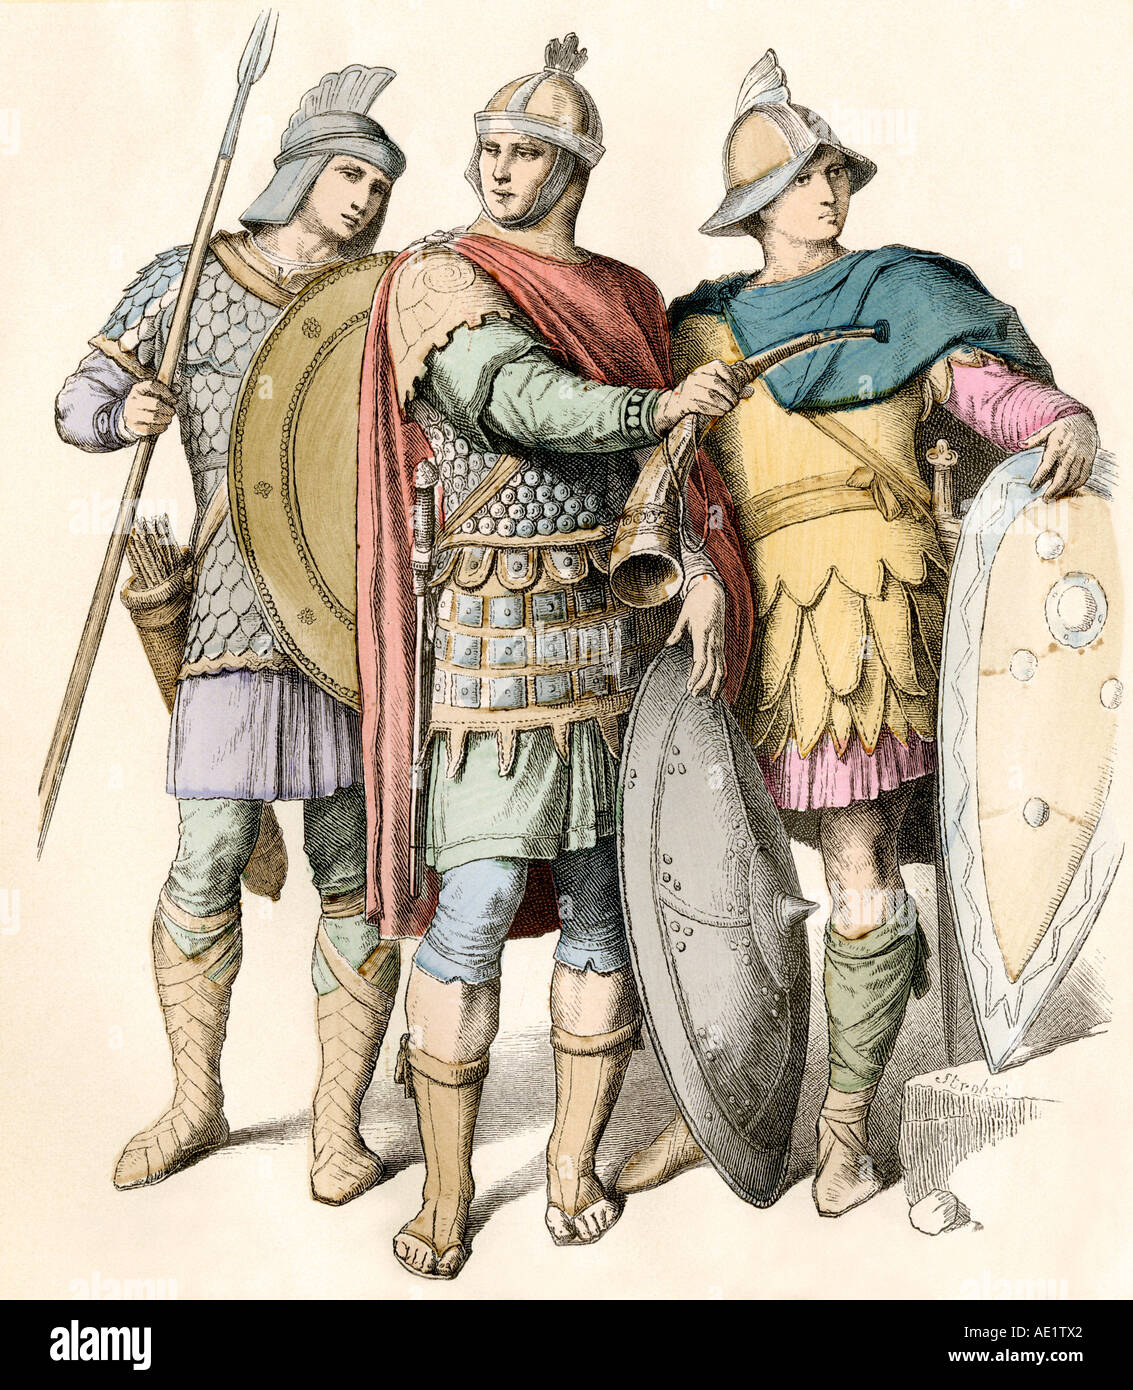 Soldiers of the eastern Roman Empire with shields and spear. Hand-colored print - Stock Image